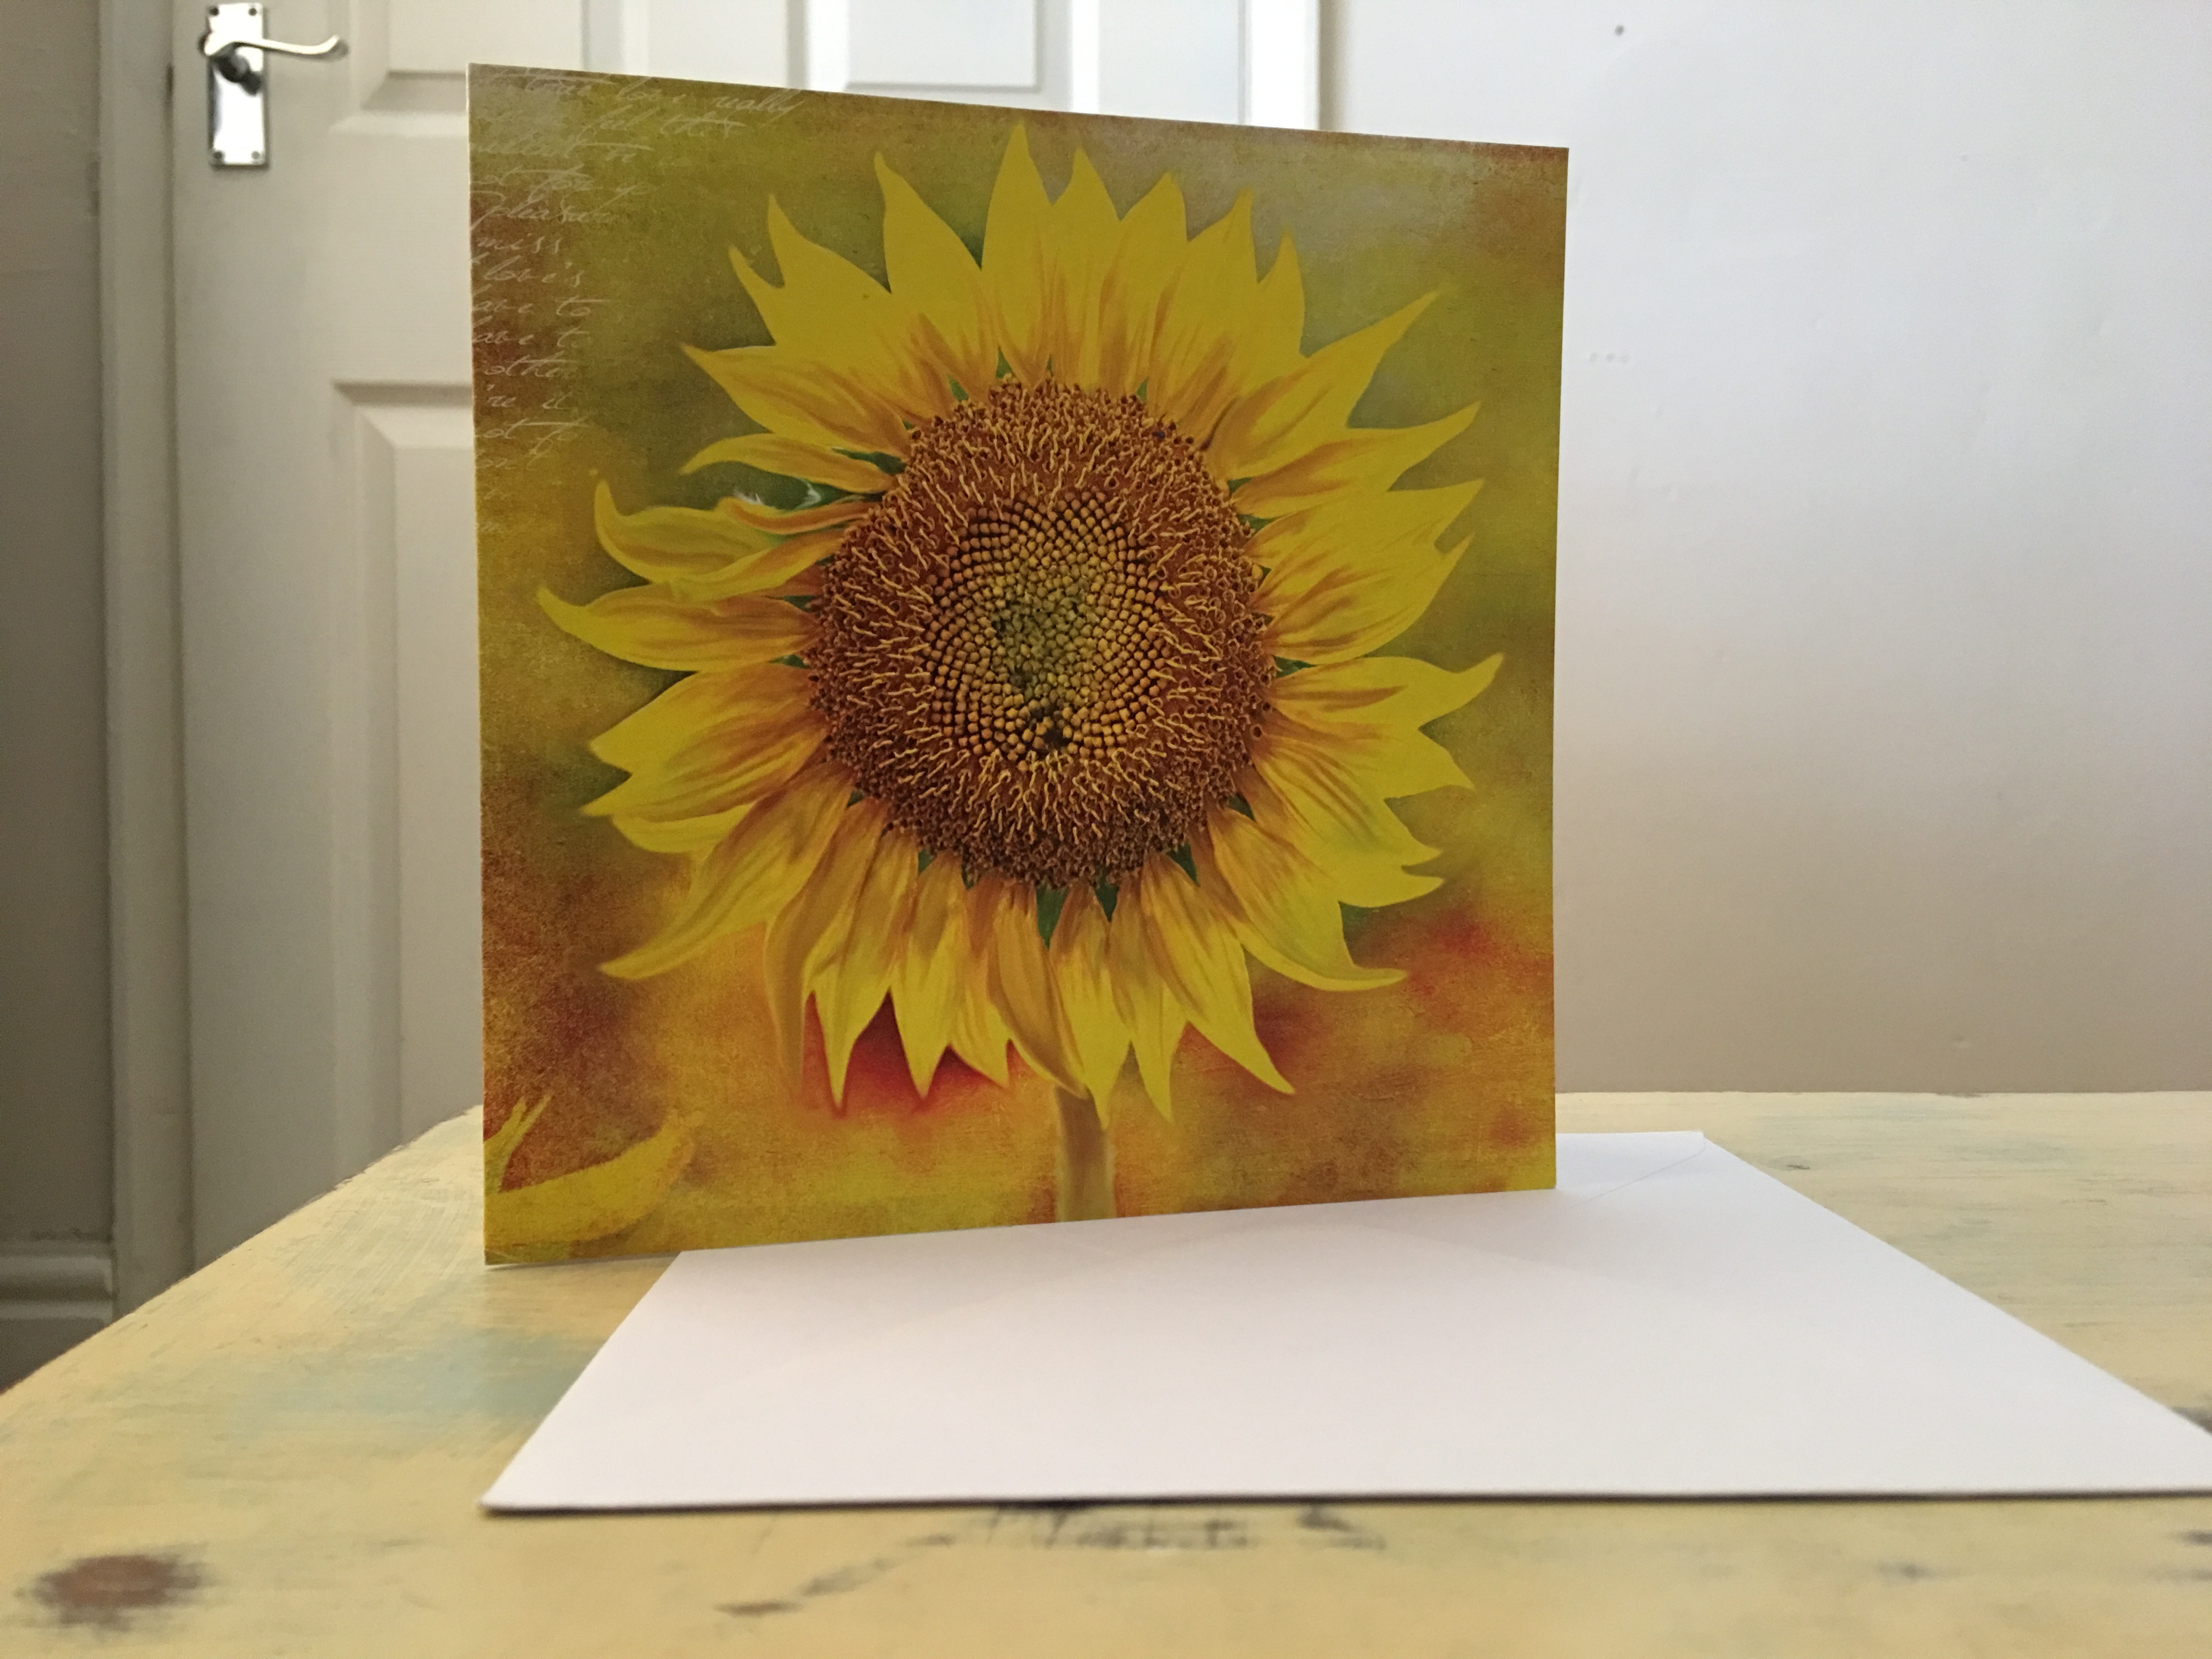 Greetings cards birthday cards christmas cards blank cards the almanac gallery gaia golden sunflower greetings card by the great british card company printed in the uk photograph by authro 29 june 2017 kristyandbryce Choice Image